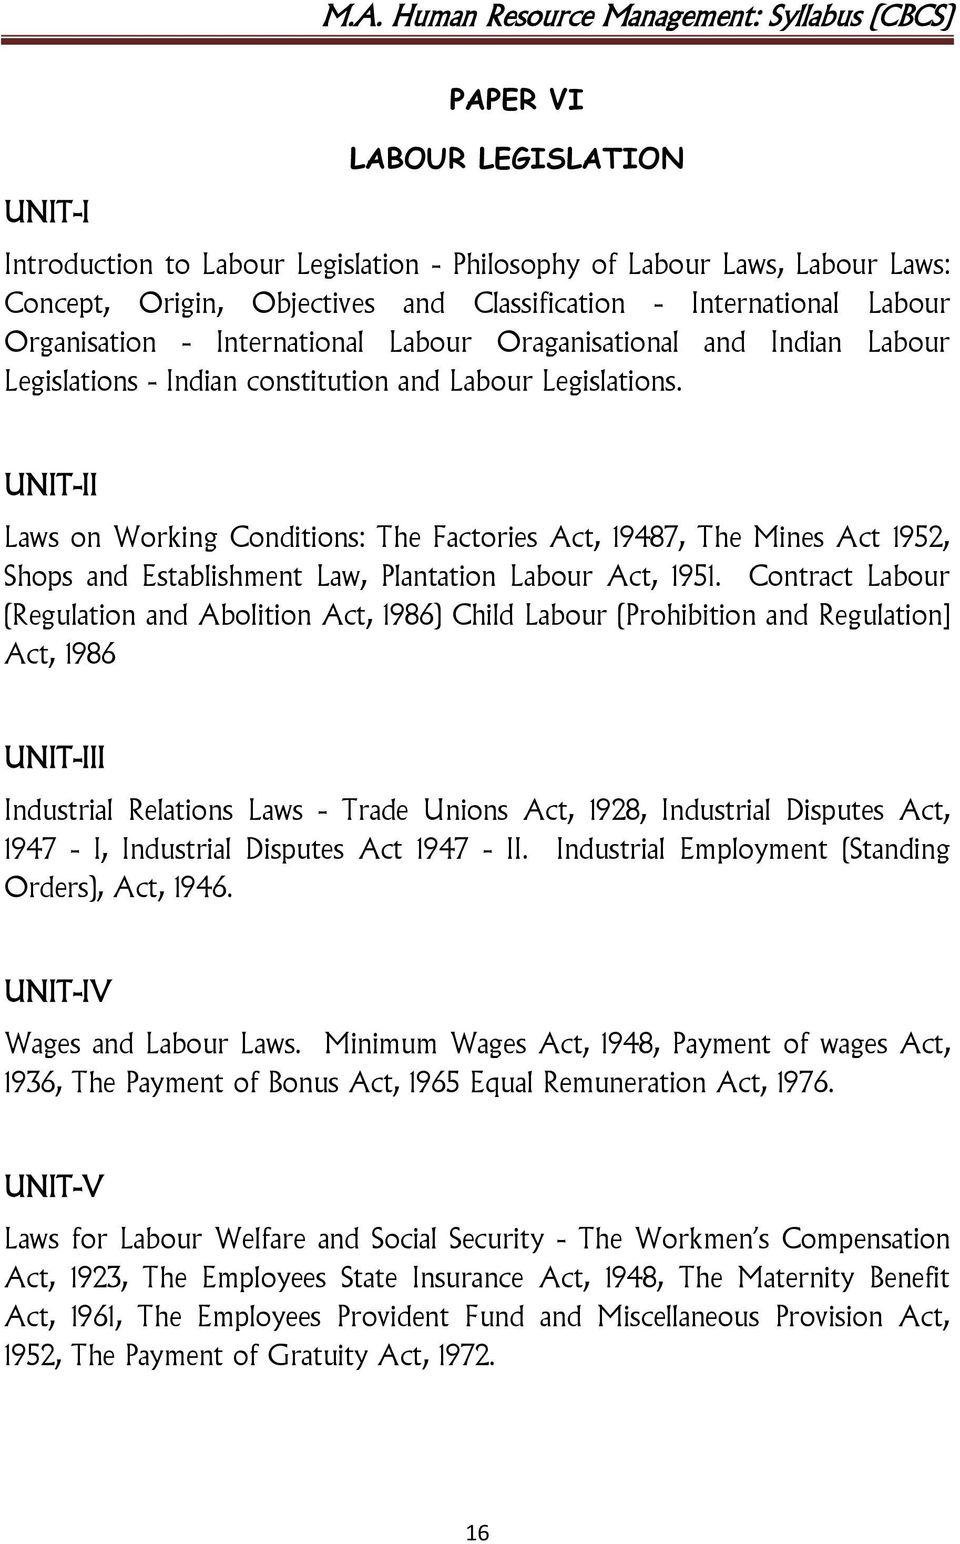 UNIT-II Laws on Working Conditions: The Factories Act, 19487, The Mines Act 1952, Shops and Establishment Law, Plantation Labour Act, 1951.